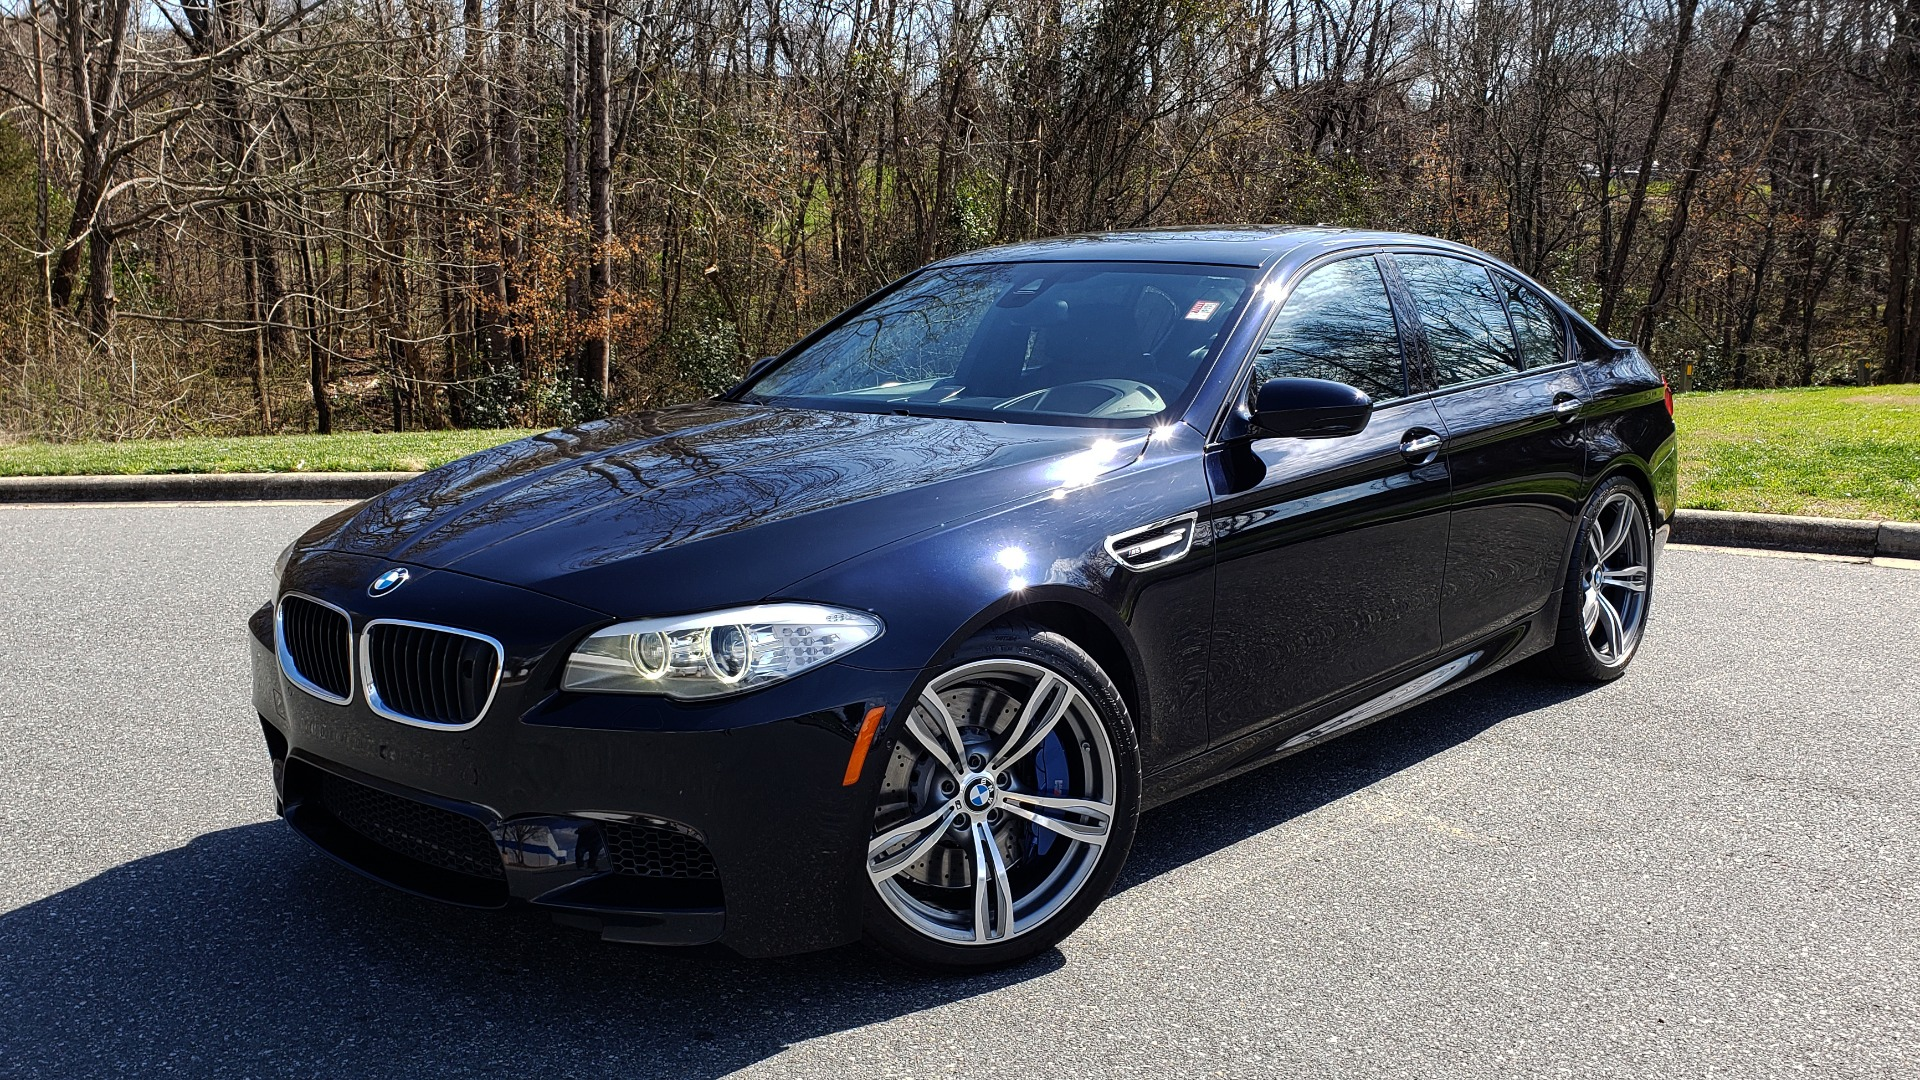 Used 2013 BMW M5 EXECUTIVE PKG / DRVR ASST / NAV / SUNROOF / REARVIEW for sale Sold at Formula Imports in Charlotte NC 28227 1